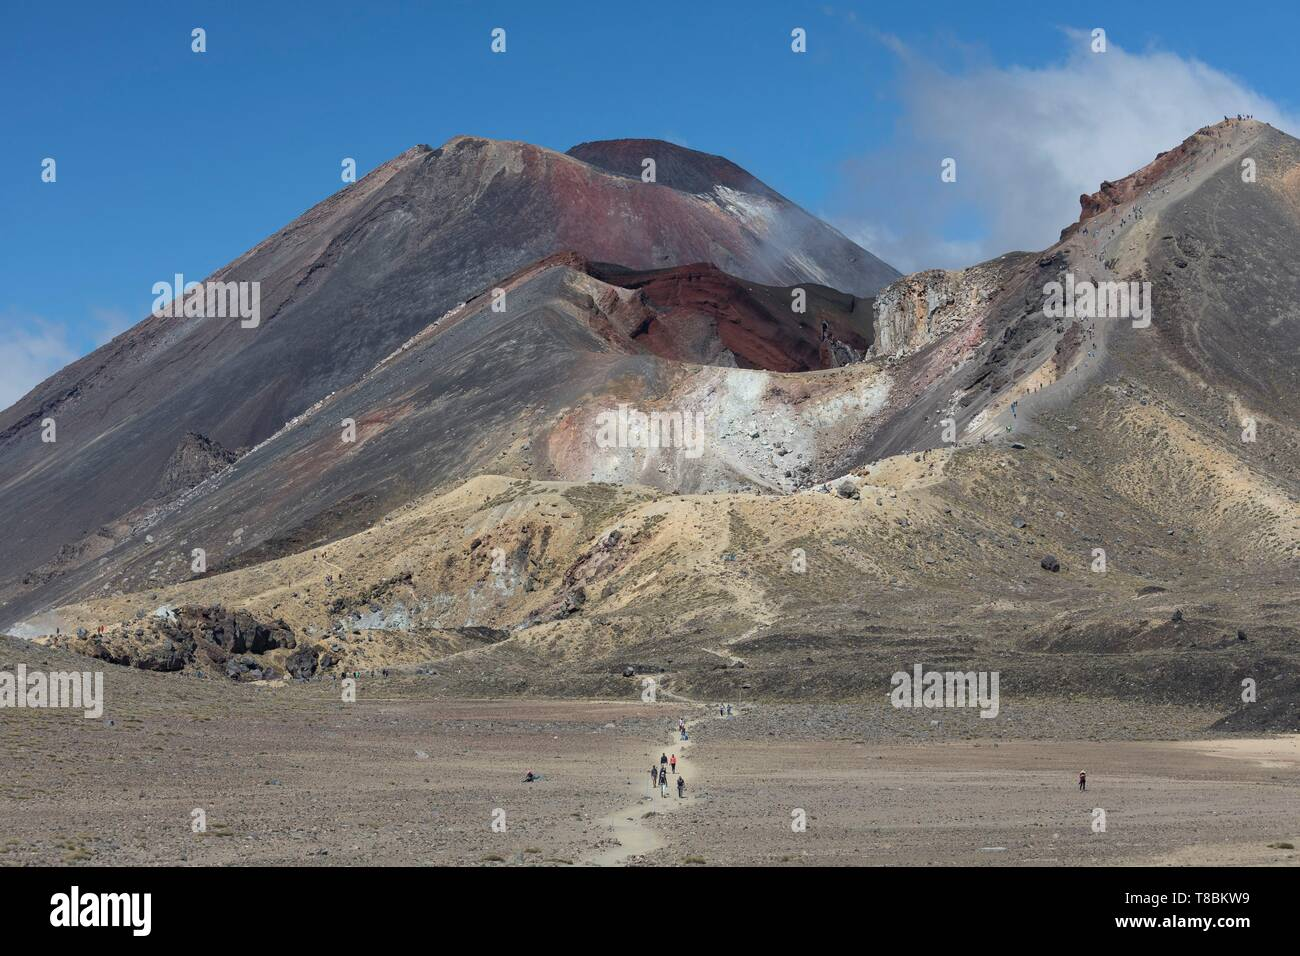 New Zealand, North Island, Waikato region, Tongariro National Park, labelled Unesco World Heritage Site, Tongariro and Ngauruhoe volcanoes - Stock Image